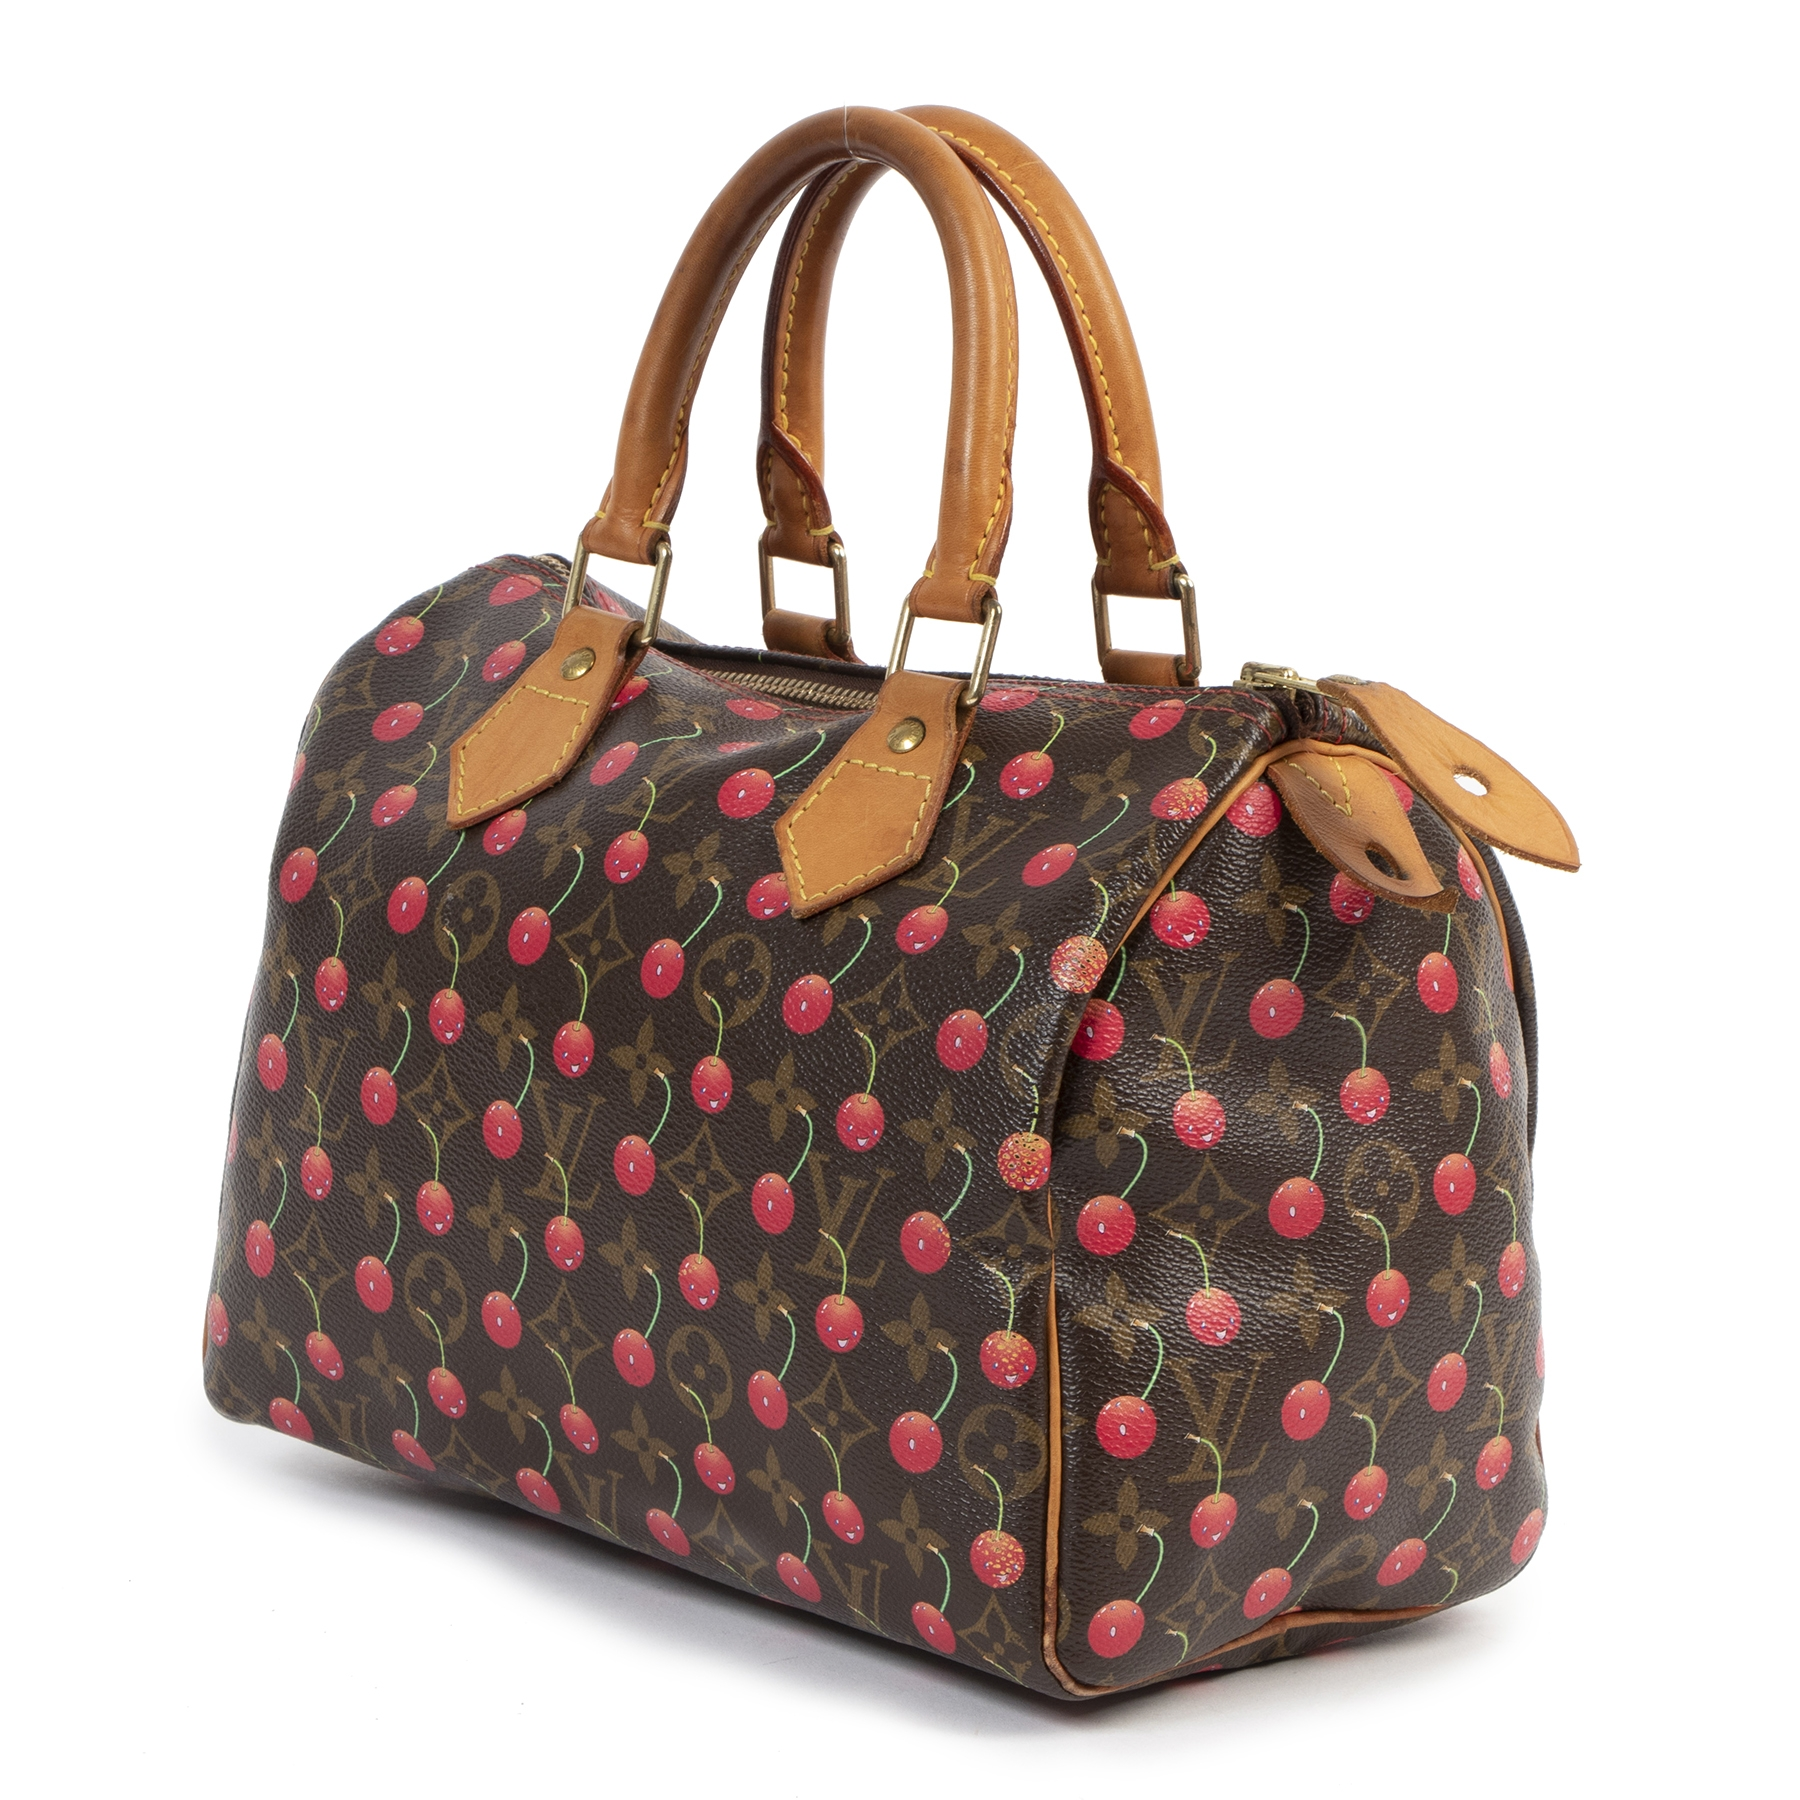 Louis Vuitton Takashi Murakami Cerises Cherry Speedy 25 Bag